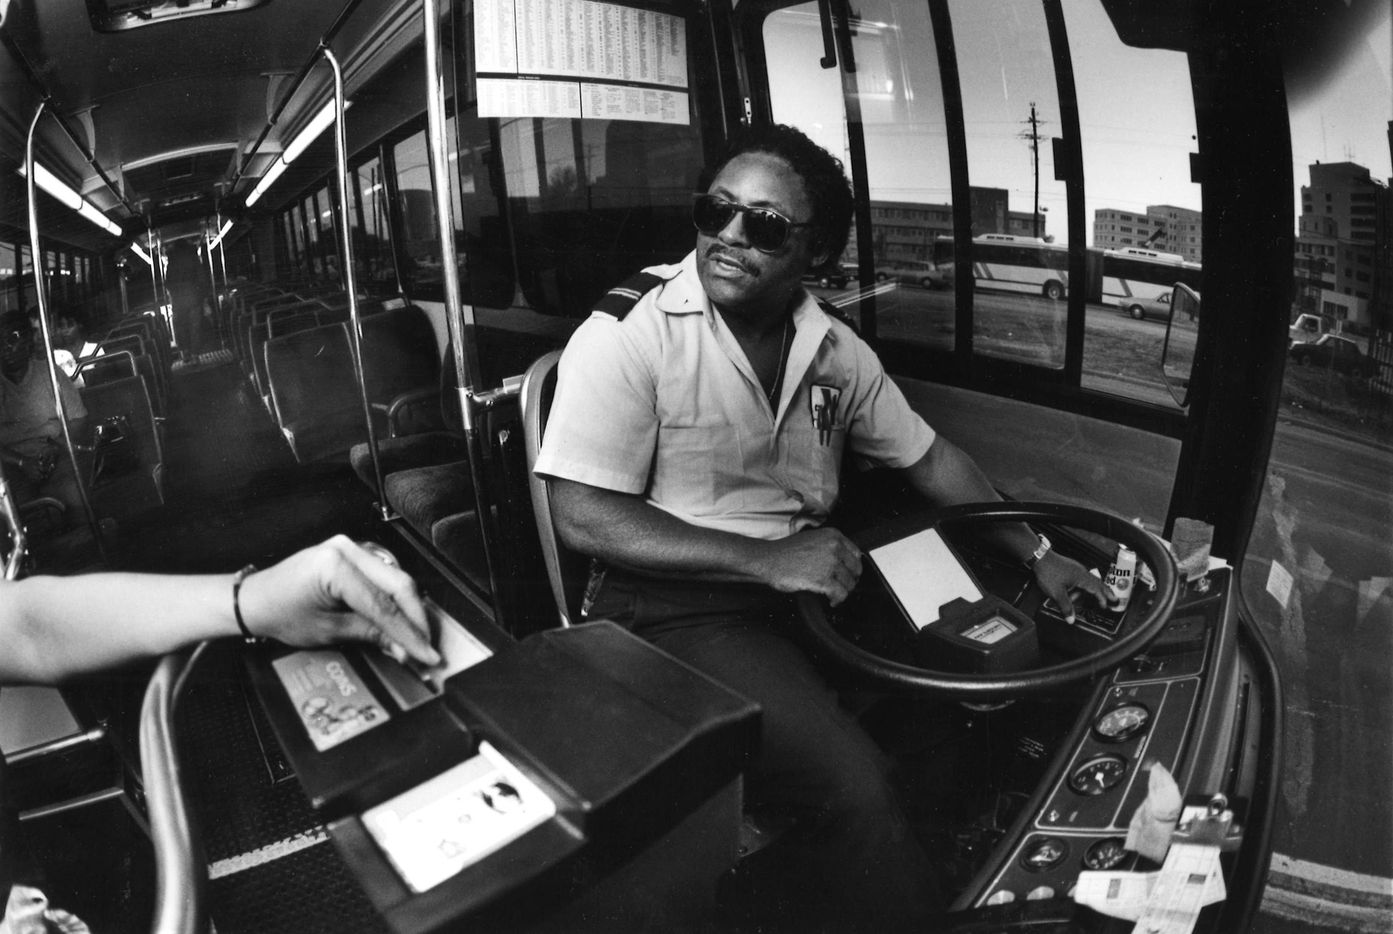 DART bus driver Ulysses Griffin had been a driver for 14 years in 1987.